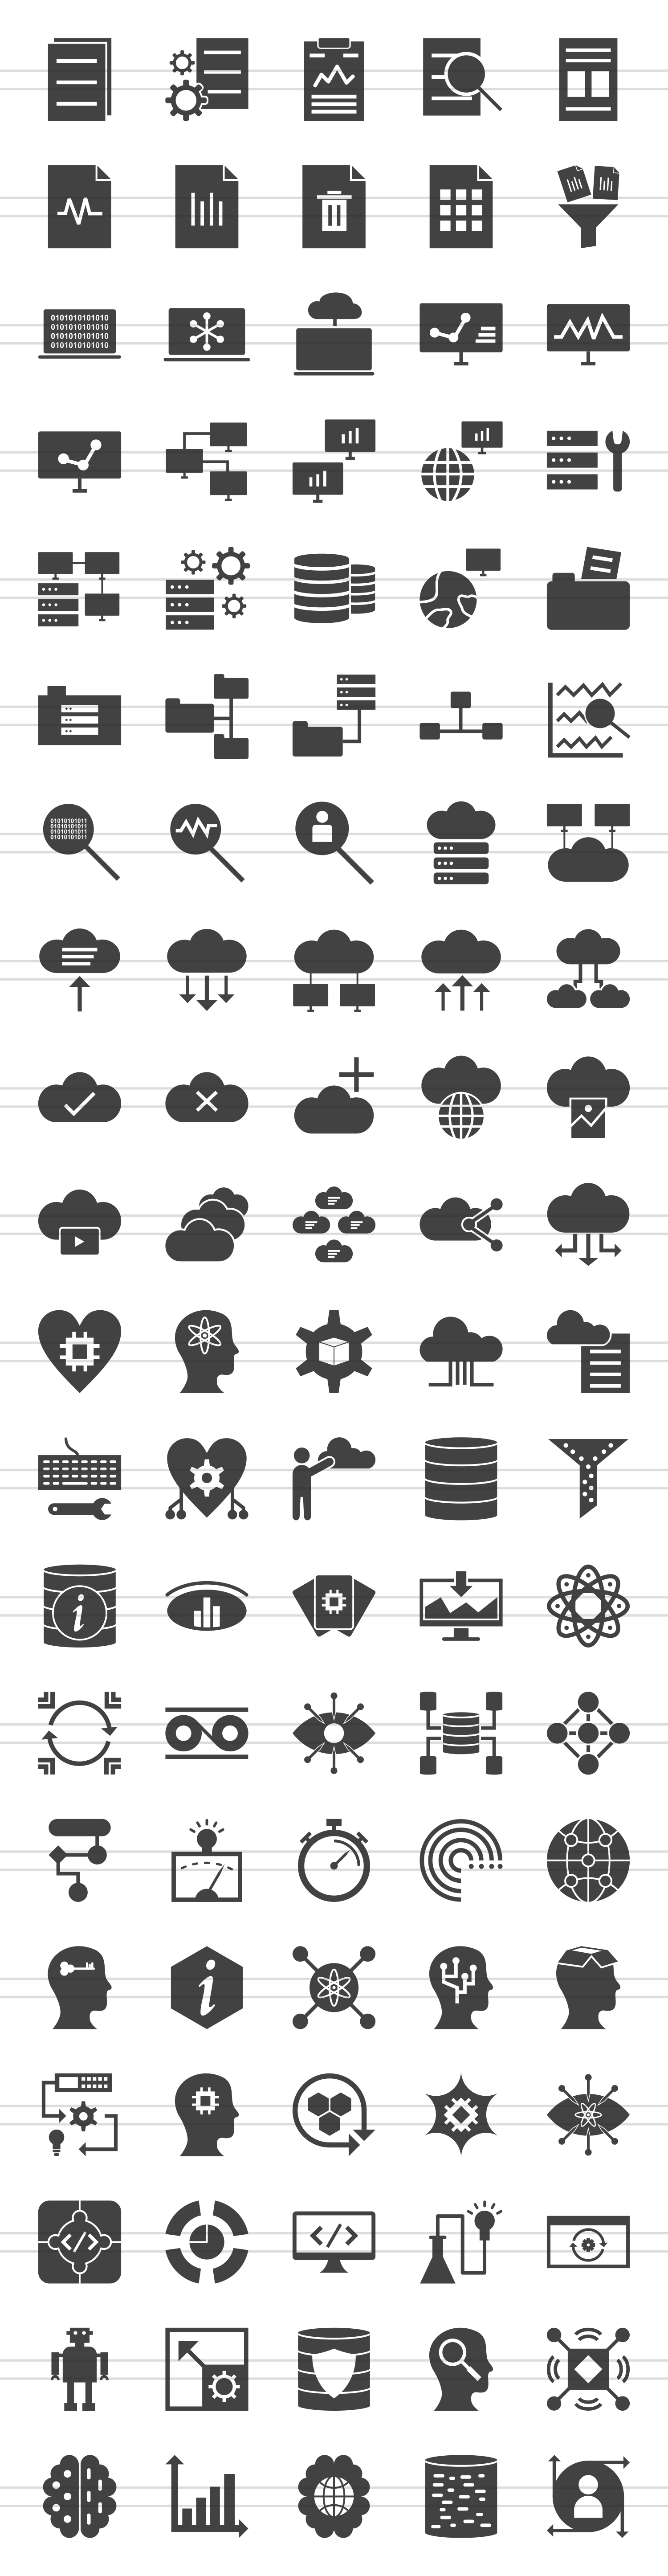 100 Data Glyph Icons example image 2